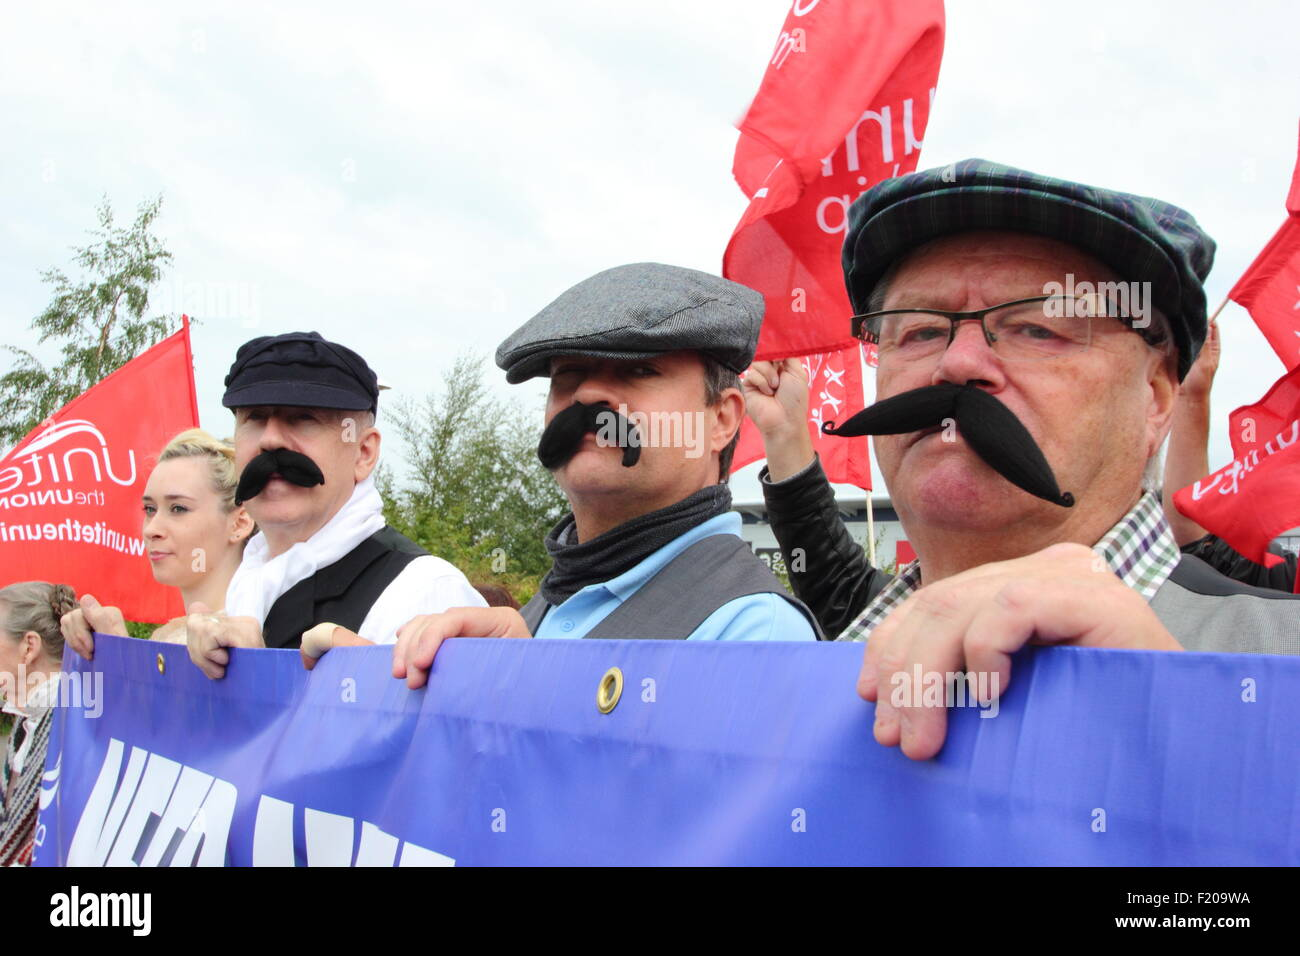 Shirebrook, Derbyshire, UK. 9 Sept 2015. Unite union supporters dressed in Dickensian-style clothing protest against - Stock Image